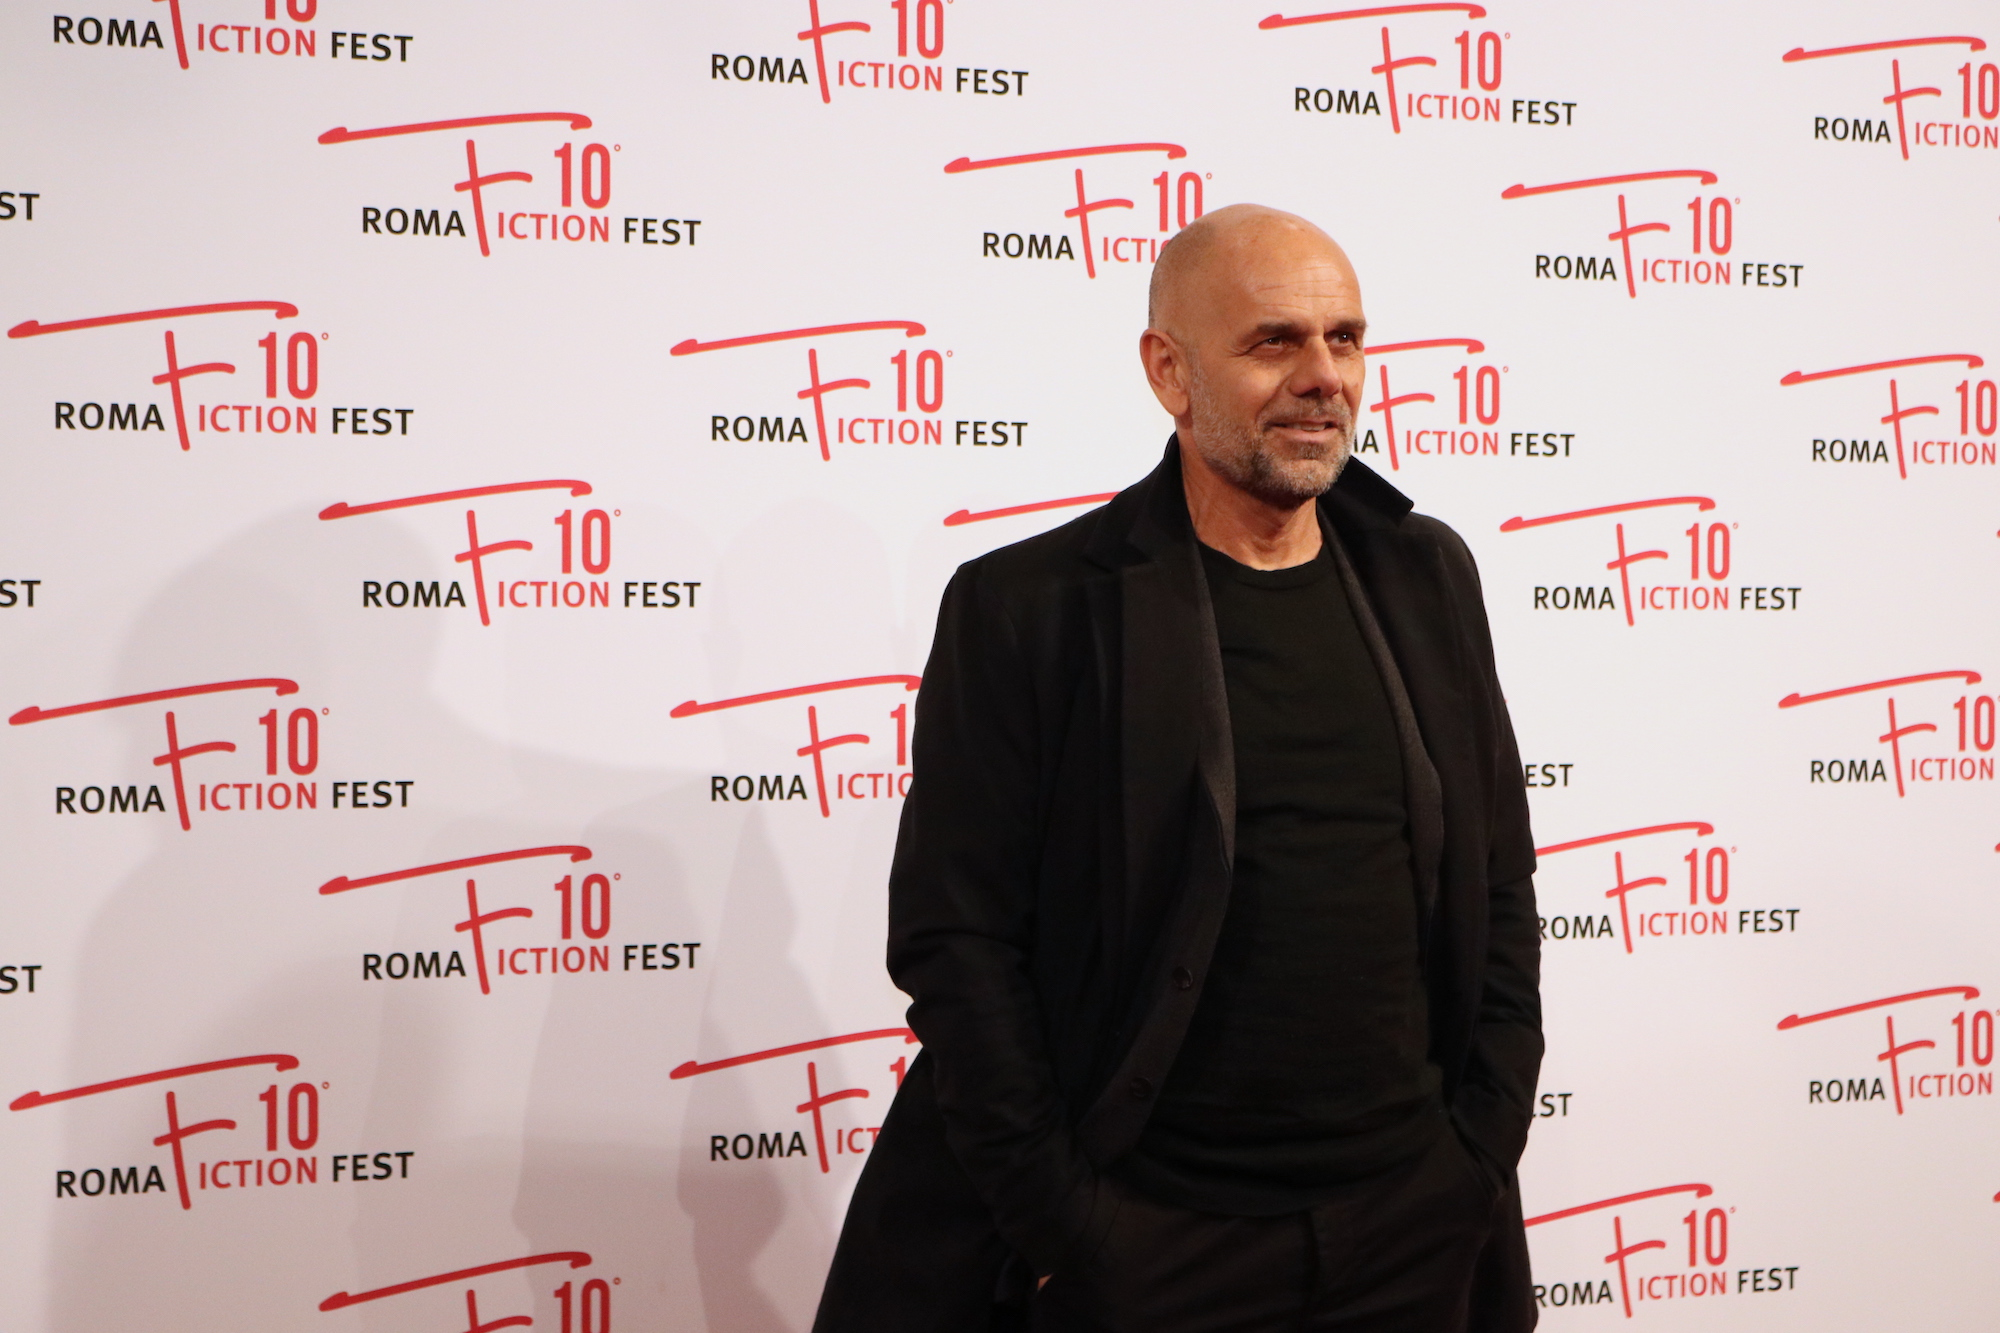 Roma Fiction Fest 2016: Riccardo Milani sul red carpet di Di padre in figlia